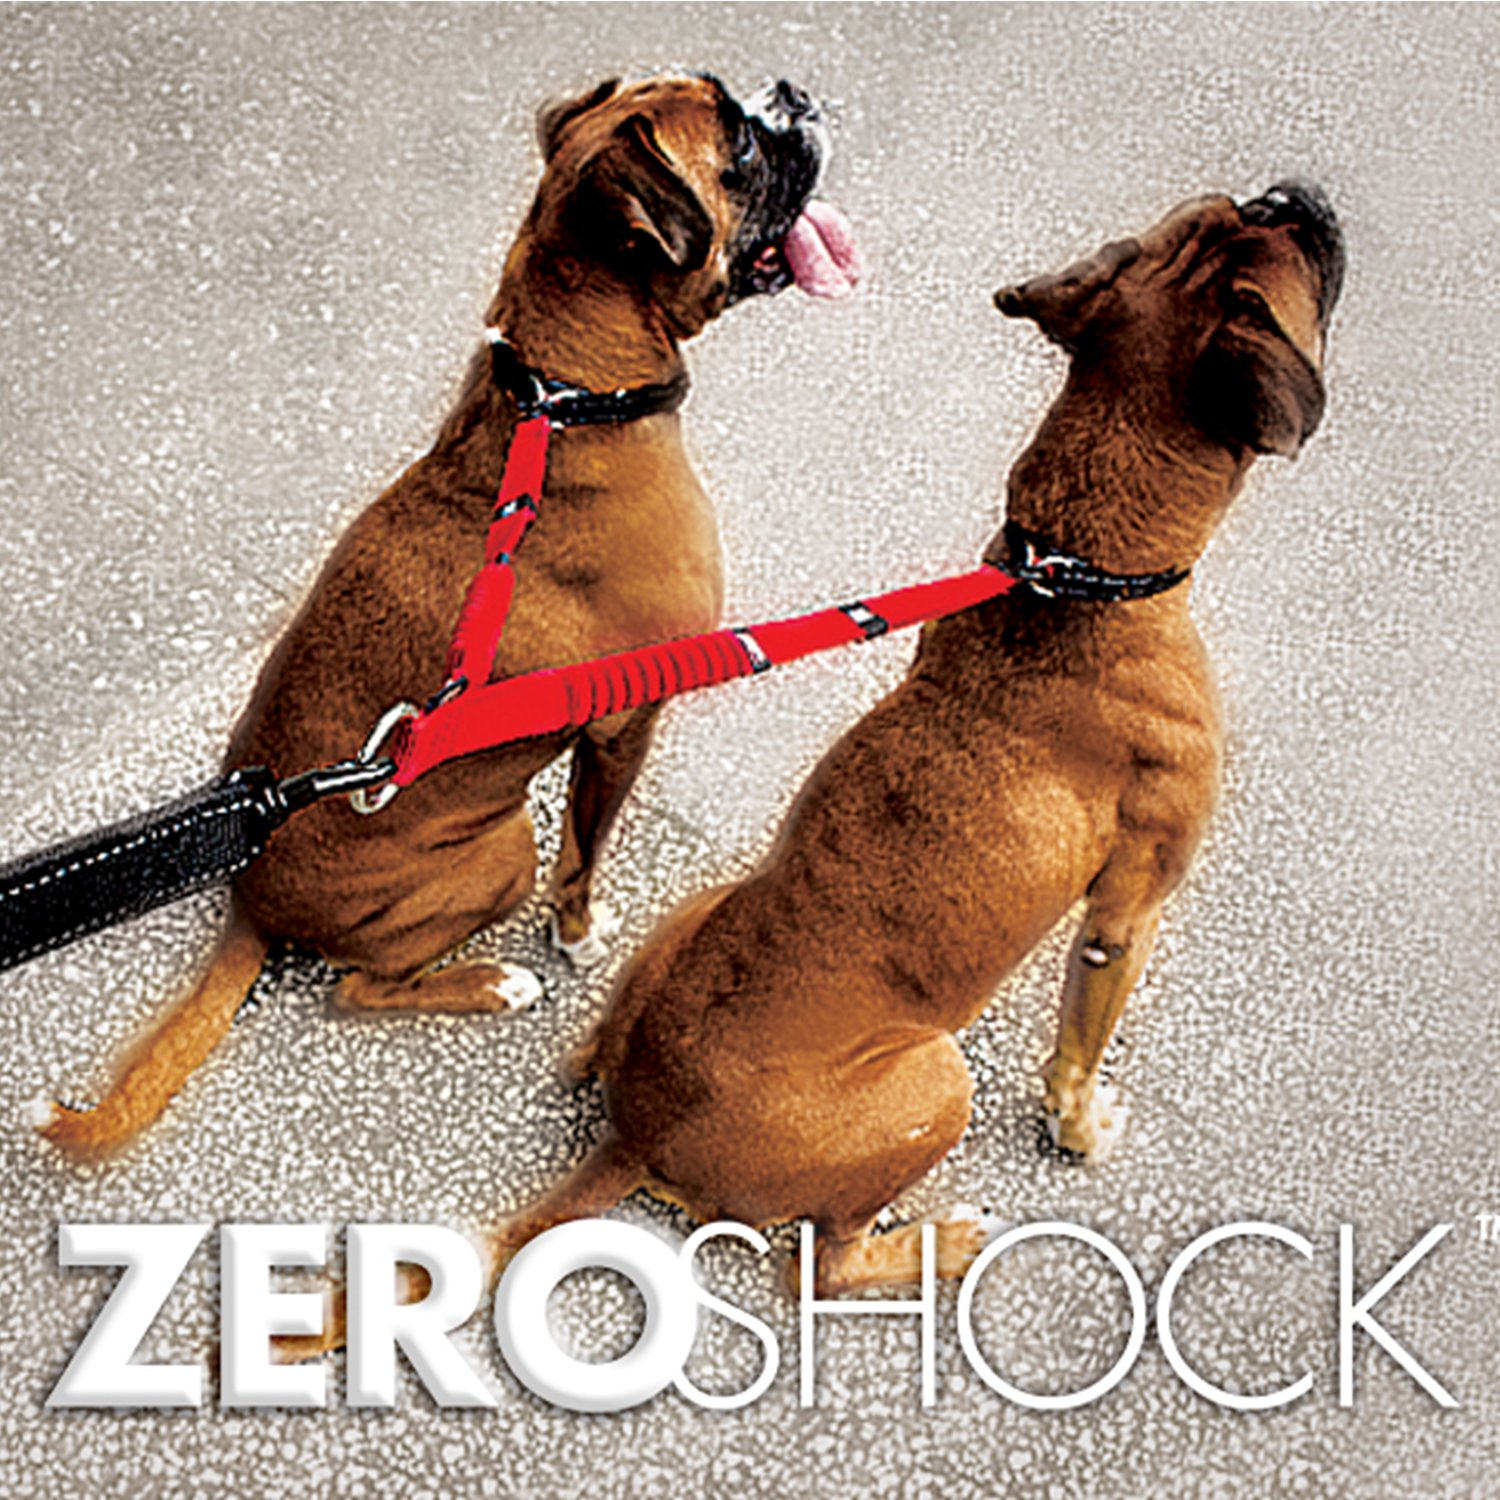 EzyDog Zero Shock Coupler Bungee Dog Leash - Walk Two Dogs with Ease and Comfort - Two Traffic Handles and Super Strength Metal Attachment Points for Control and Safety (24'', Black)